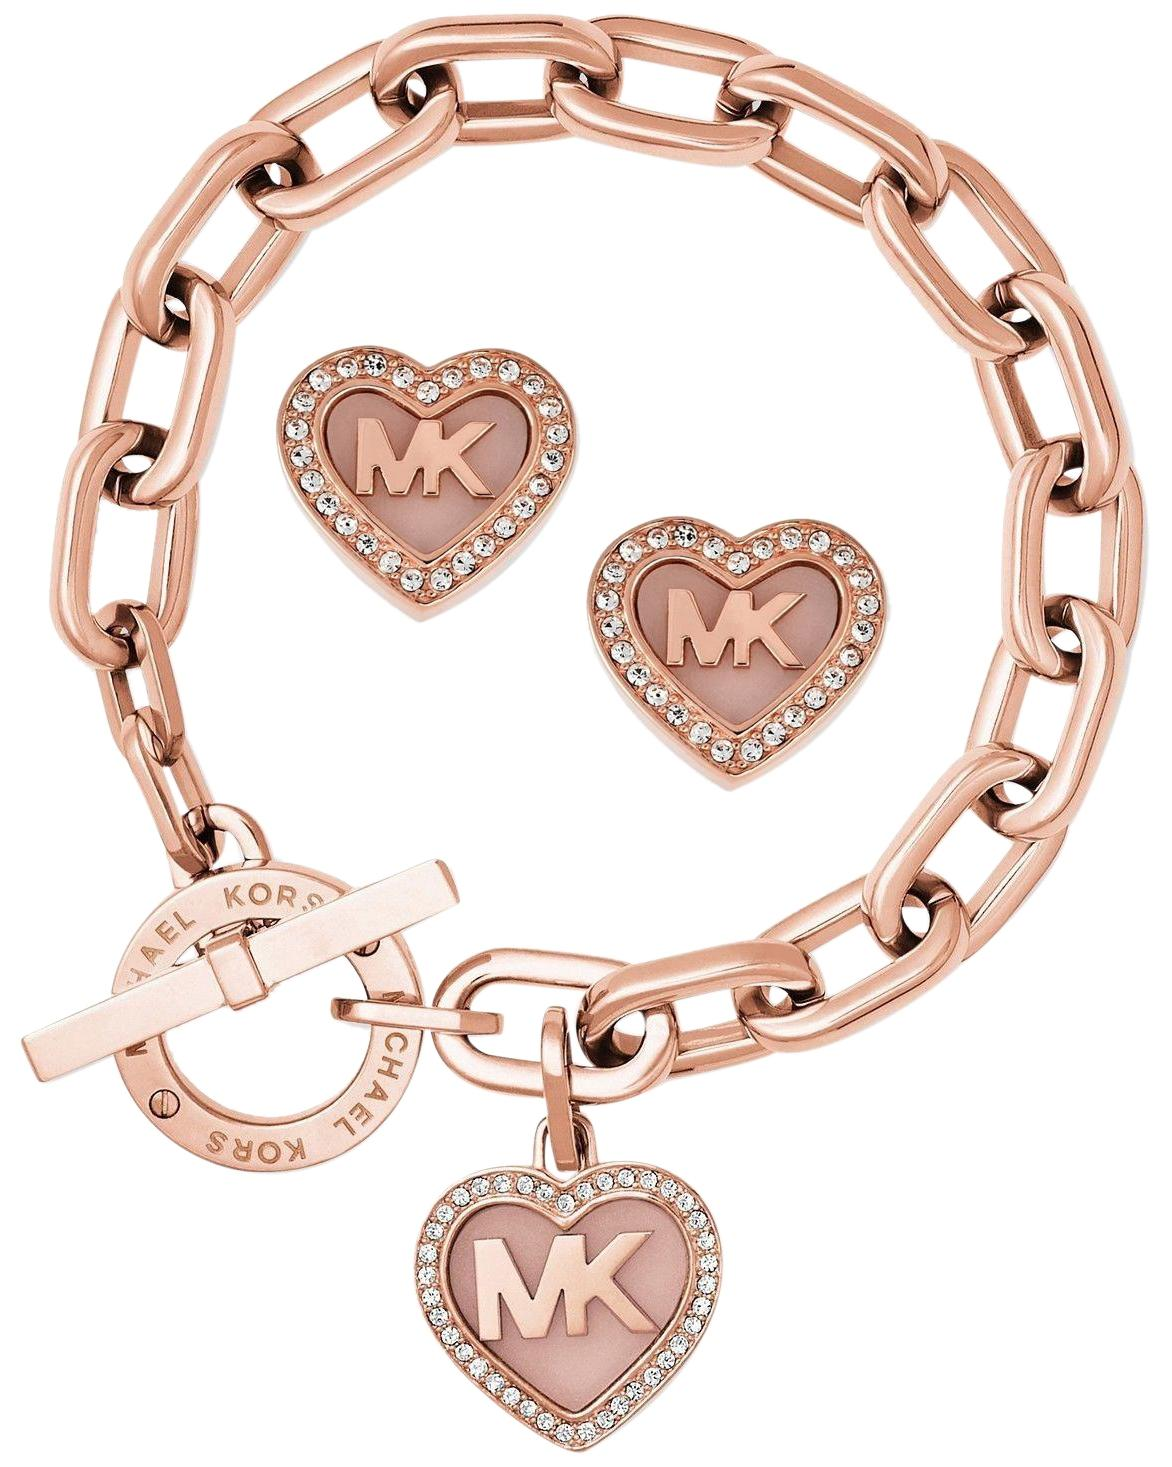 Michael Kors Rose Goldtone Set Logo Heart Earrings Bracelet Tradesy